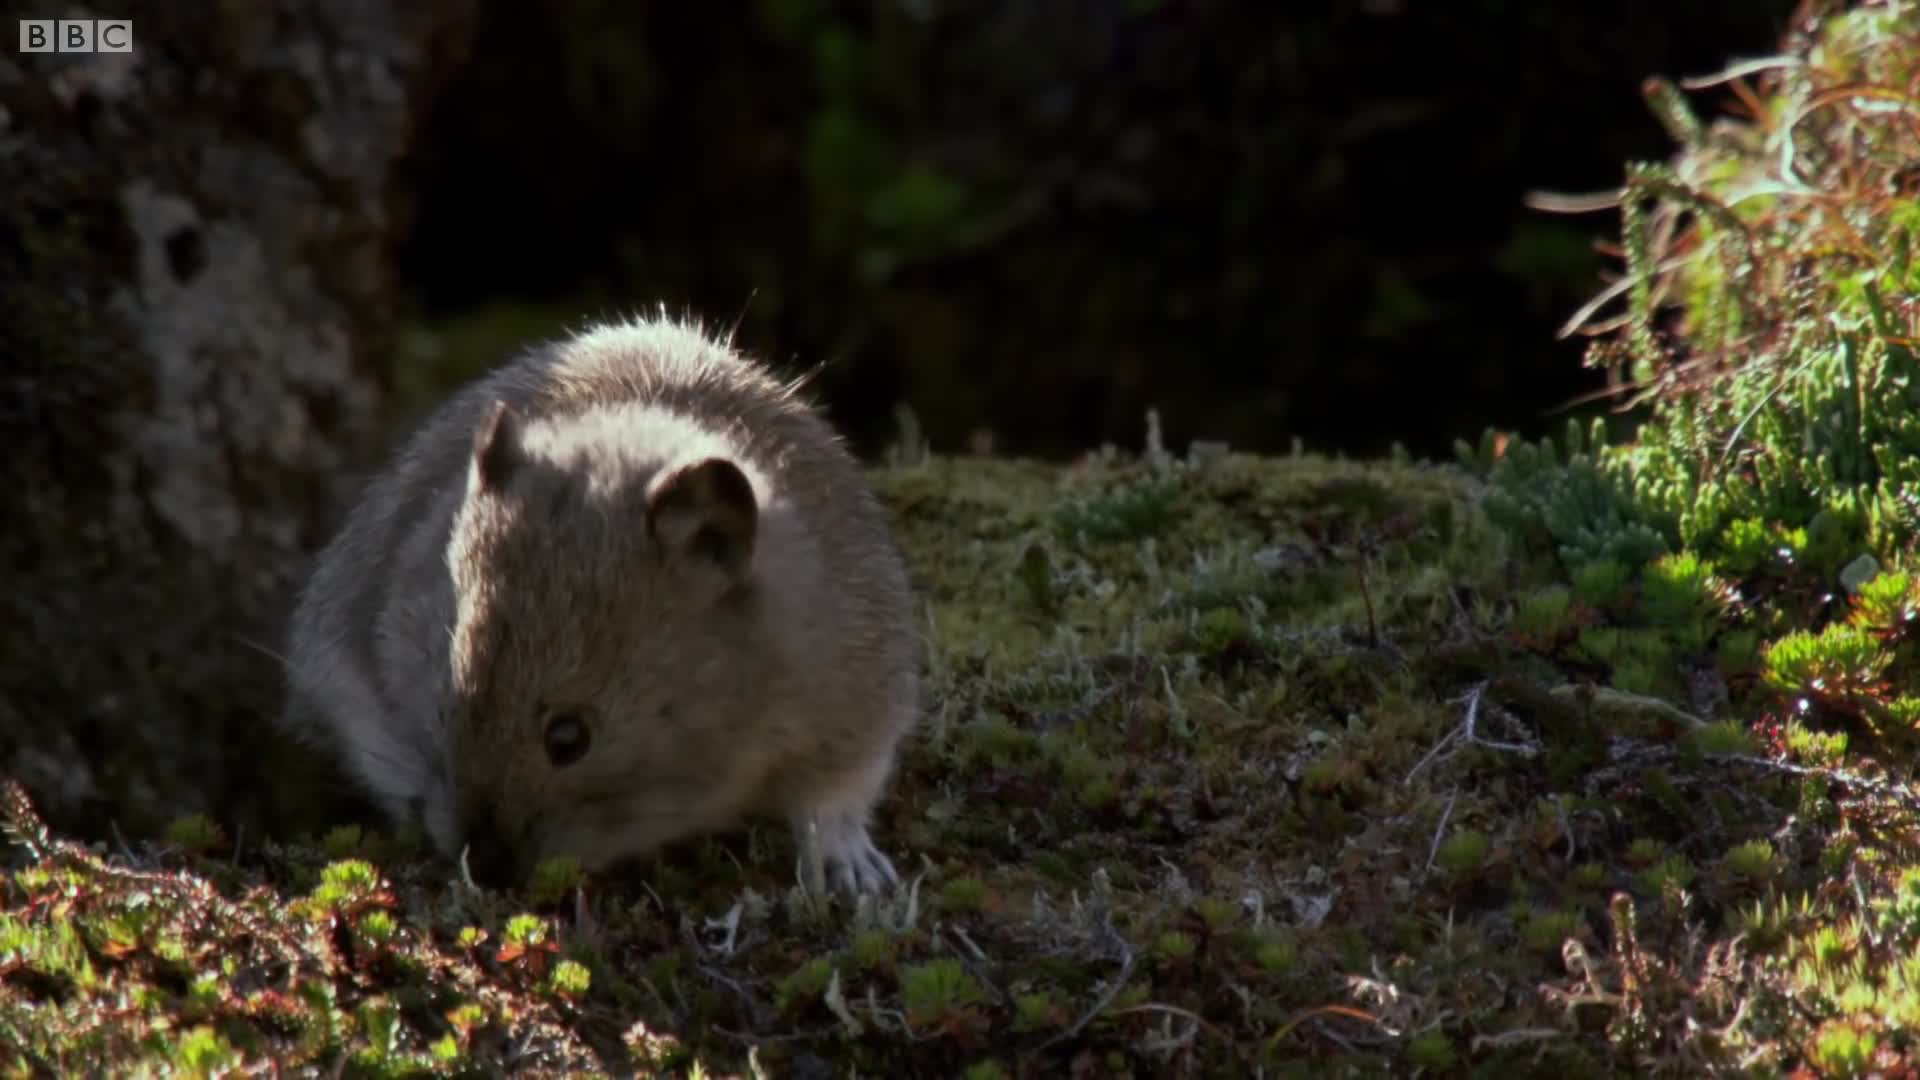 Animals, BBC, BBC Worldwide, British Broadcasting Corporation (Production Company), Green, Natural History, Nature, Wild, Wild Alaska, Wildlife, Collared Pika Prepares For Winter | Wild Alaska | BBC GIFs